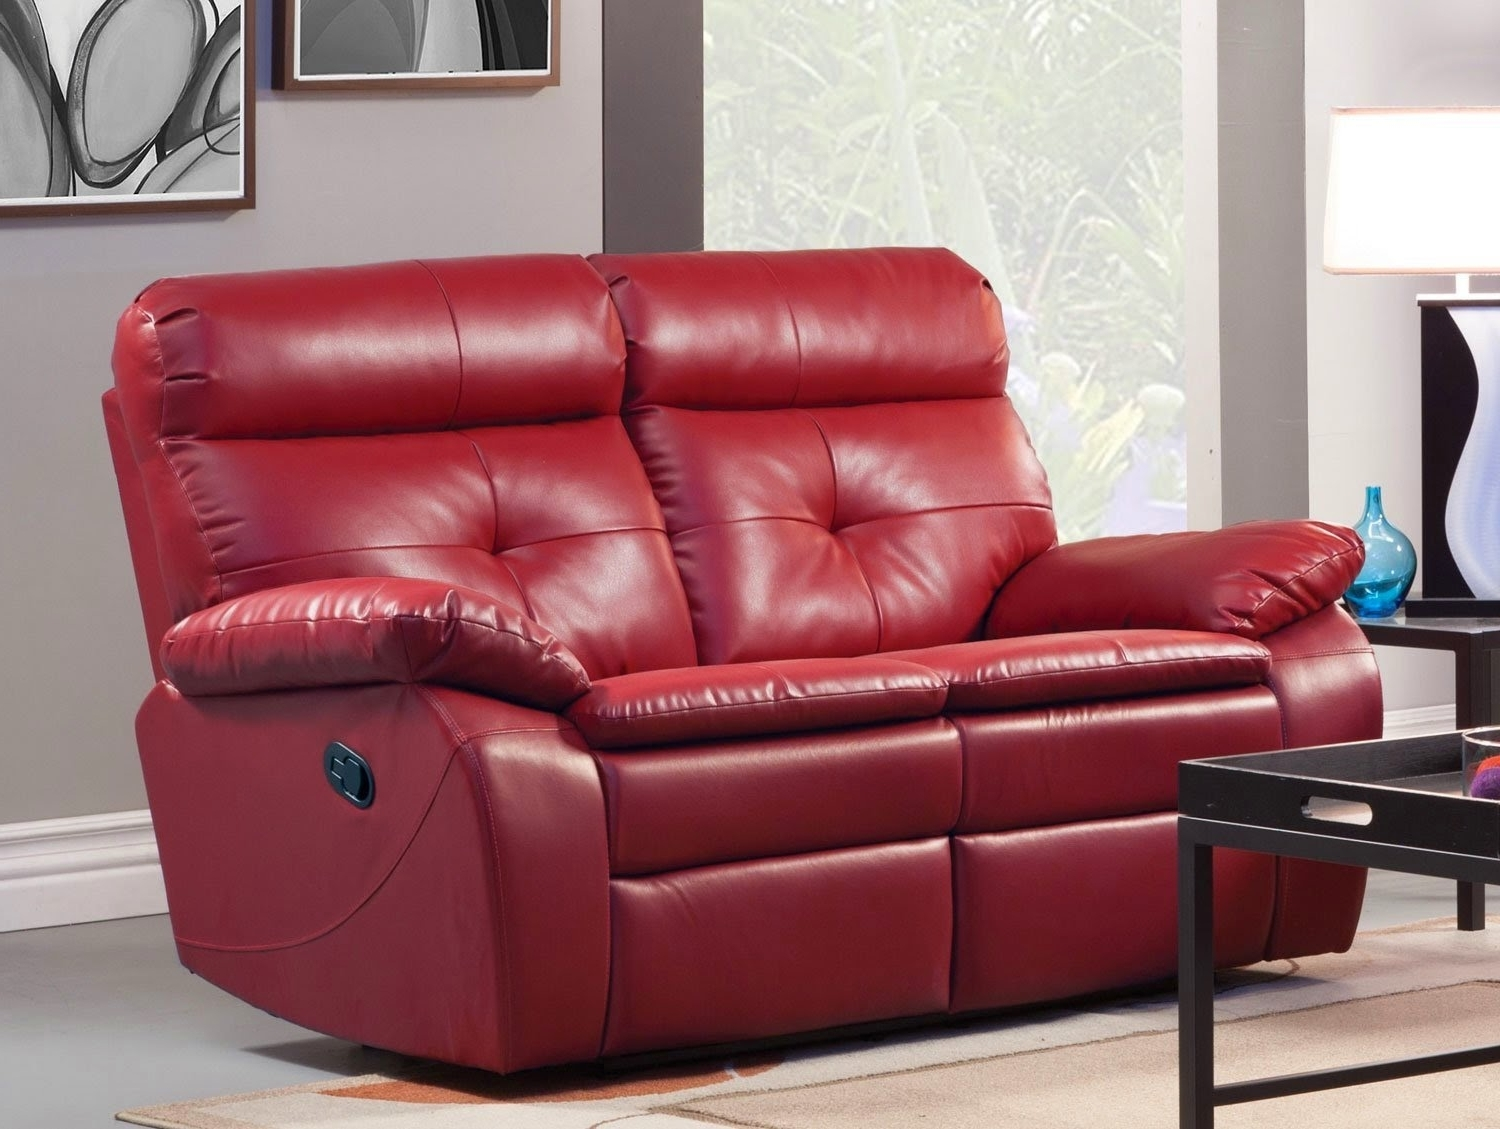 2 Seater Recliner Leather Sofas Pertaining To Famous Cheap Reclining Sofas Sale: 2 Seater Leather Recliner Sofa Sale (View 1 of 15)